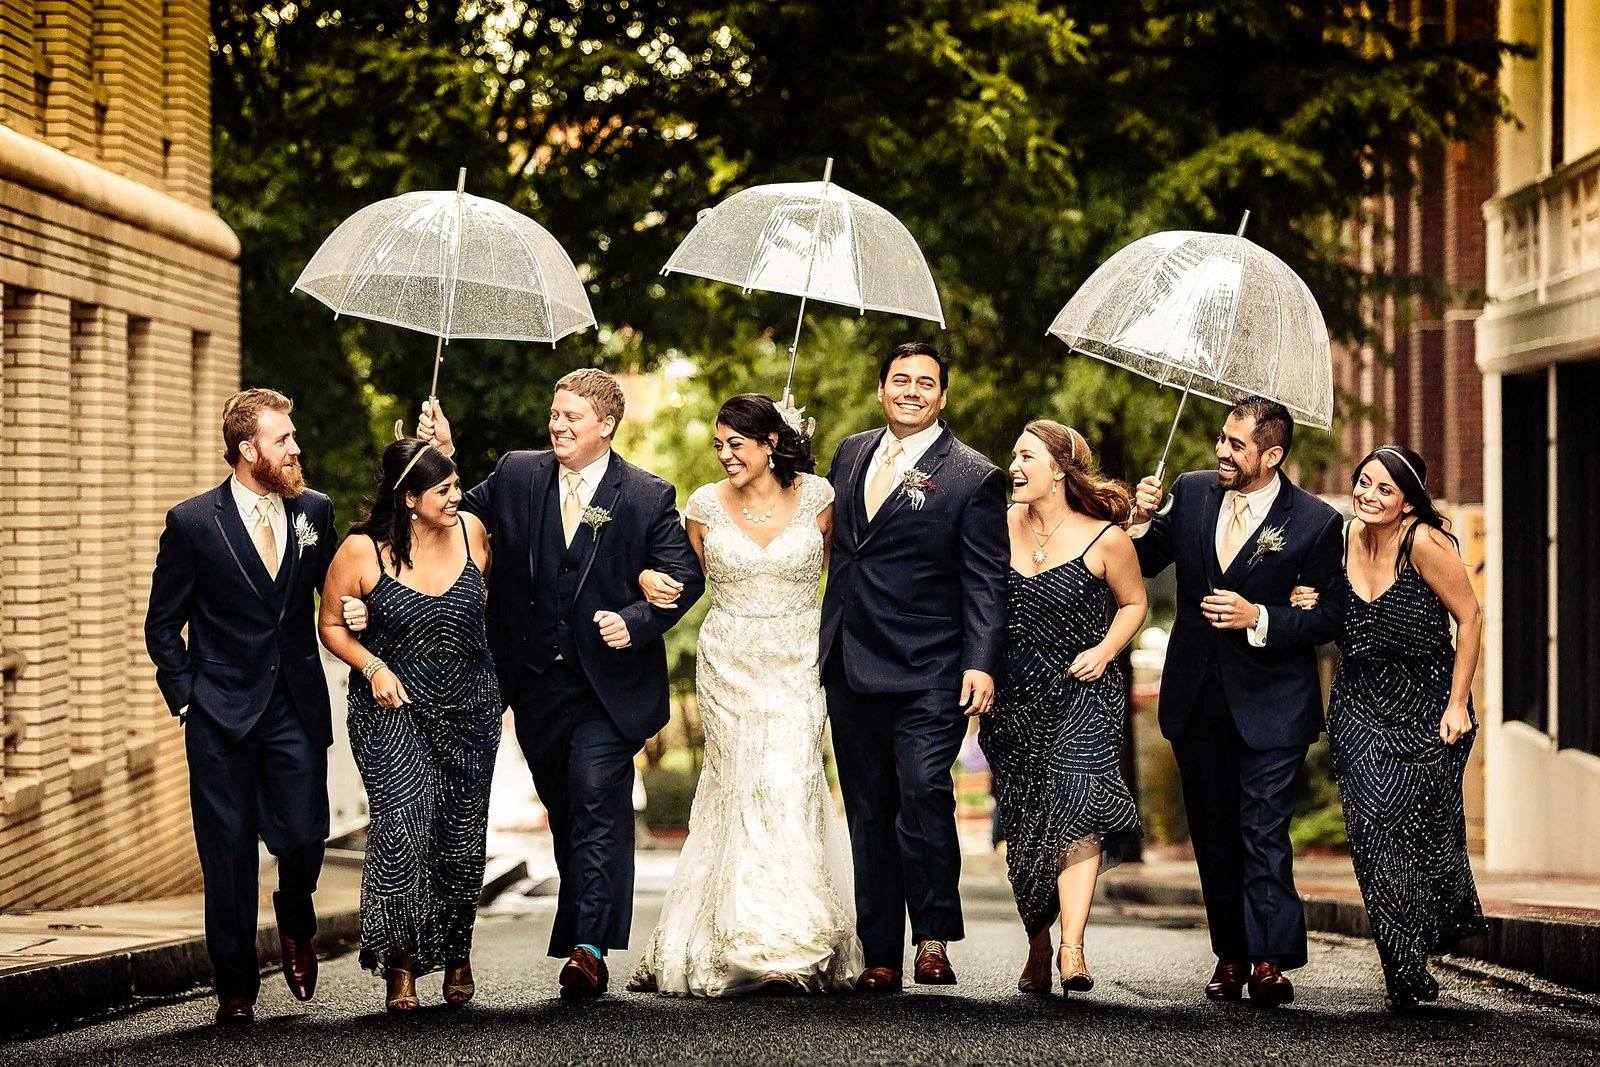 Greenville-Poinsett-hotel-Wedding-Party-Wedding-Photographers-in-Charleston-SC-Fia-Forever-Photography